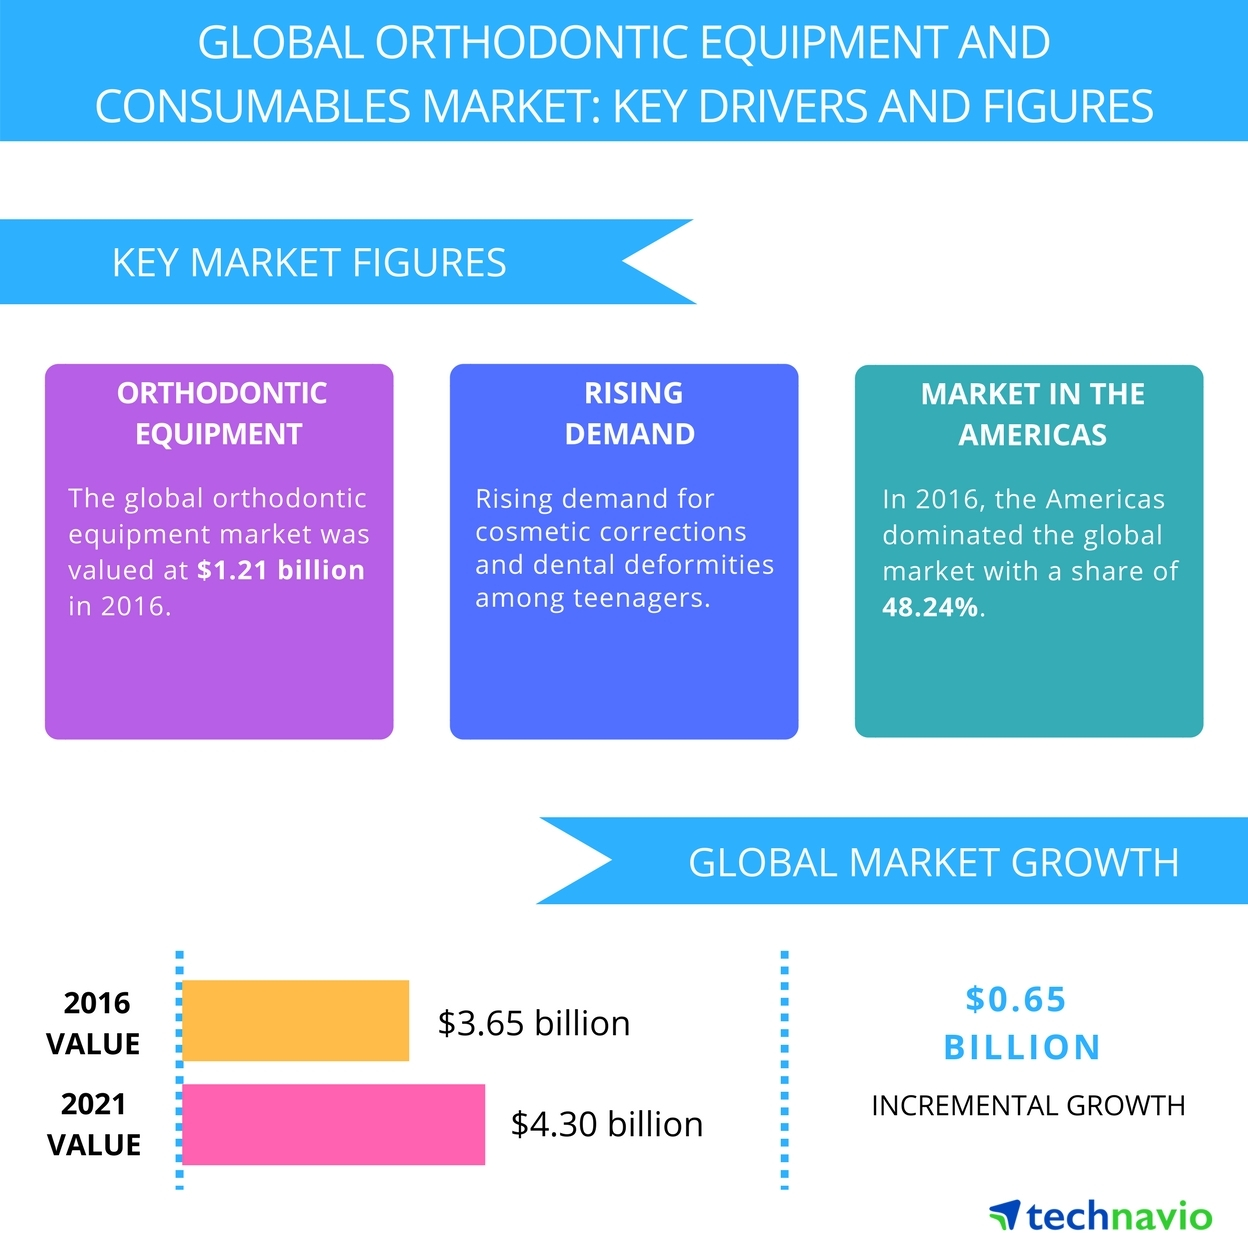 Top 5 Vendors in the Orthodontic Equipment and Consumables